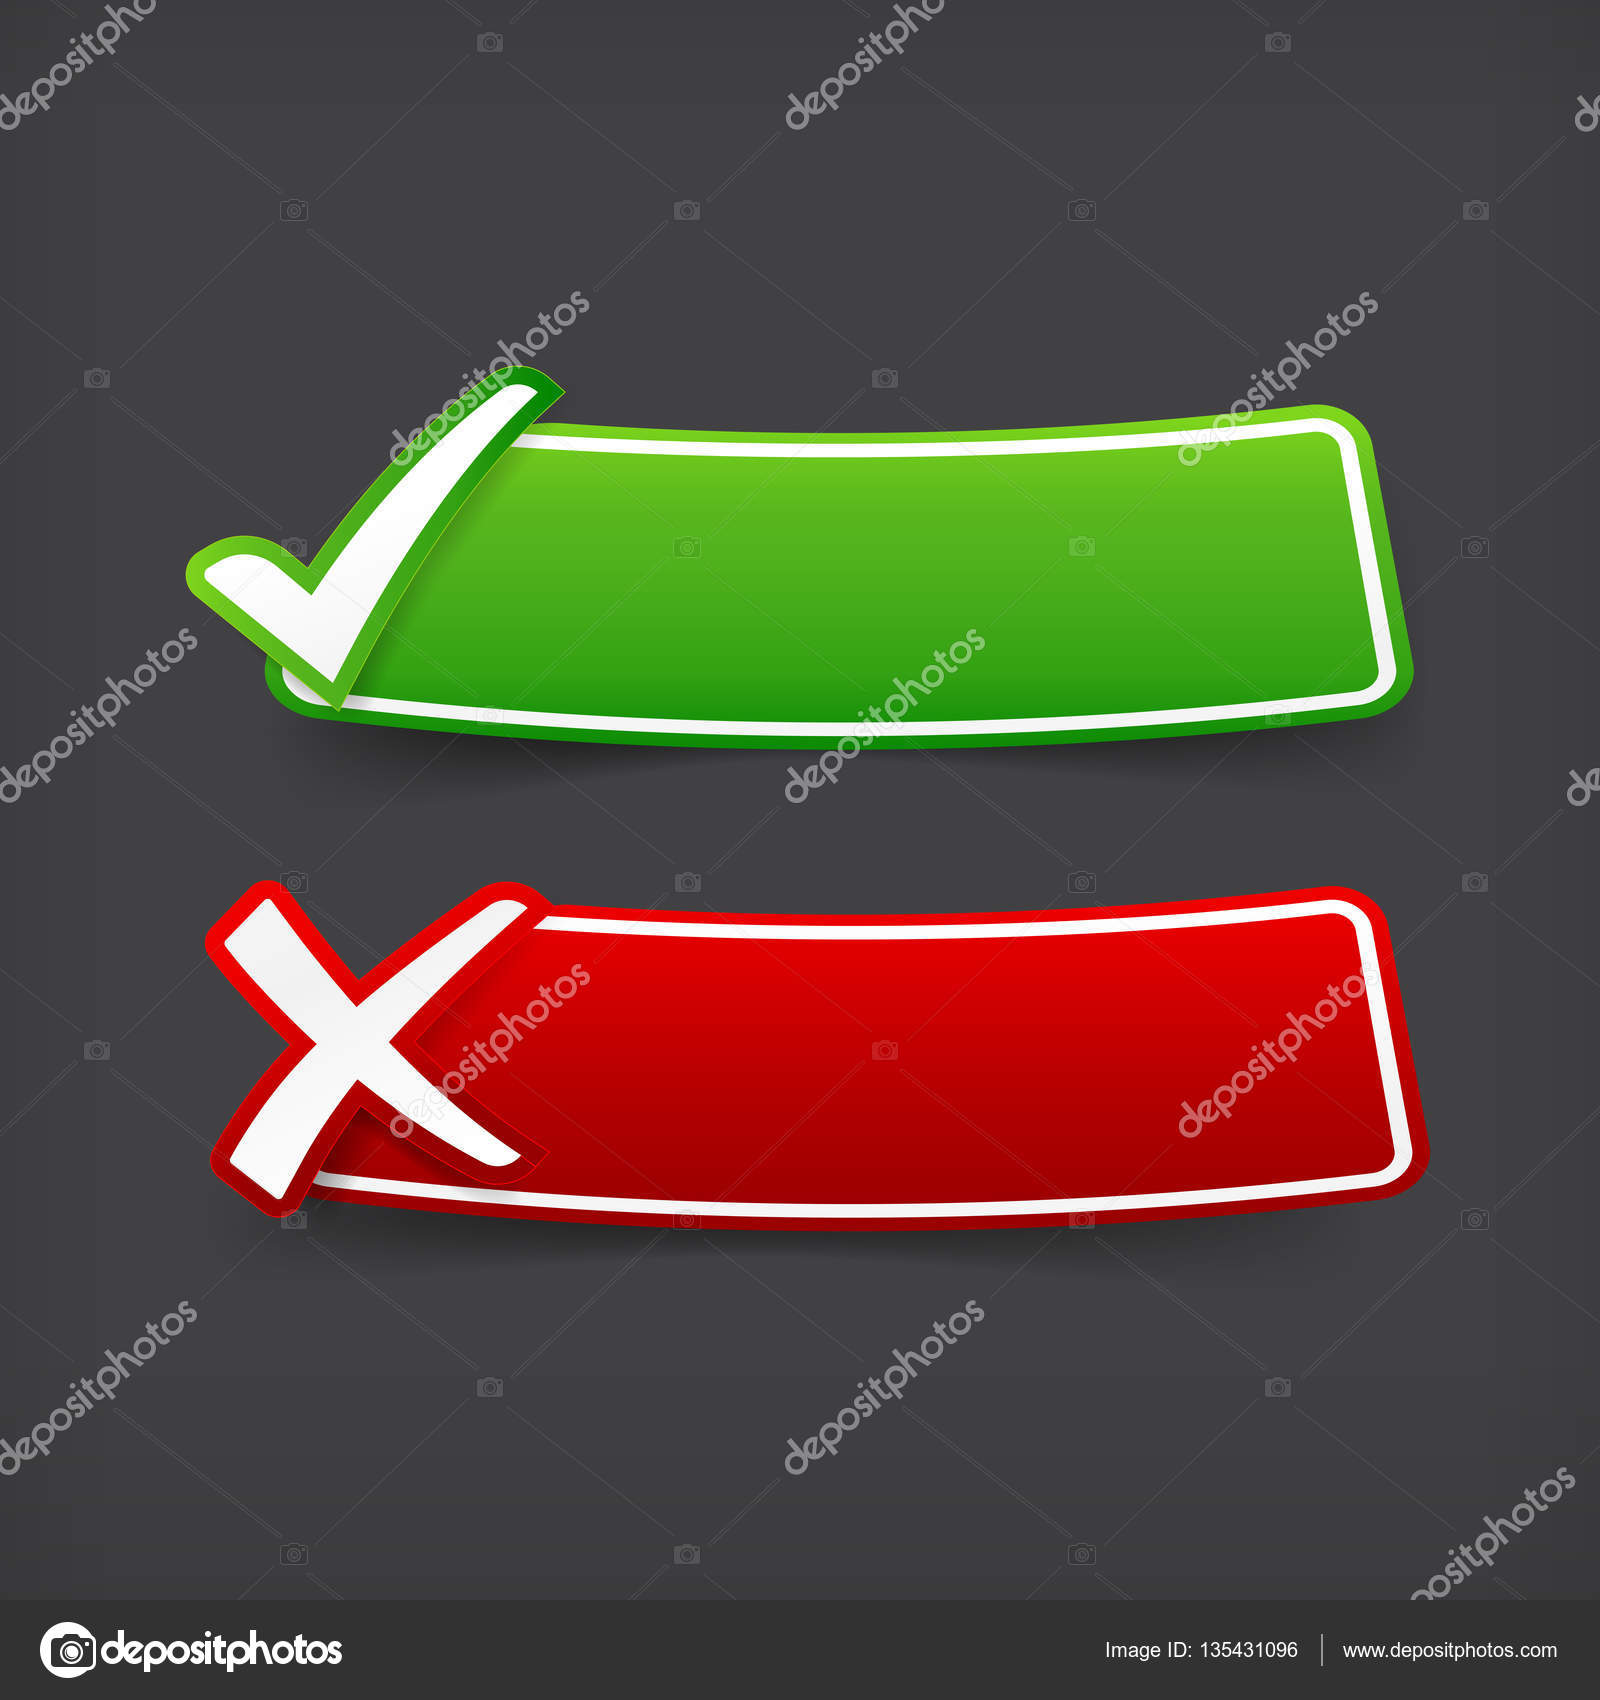 002 Set Of Green And Red Check Mark Symbol And Blank Banner With